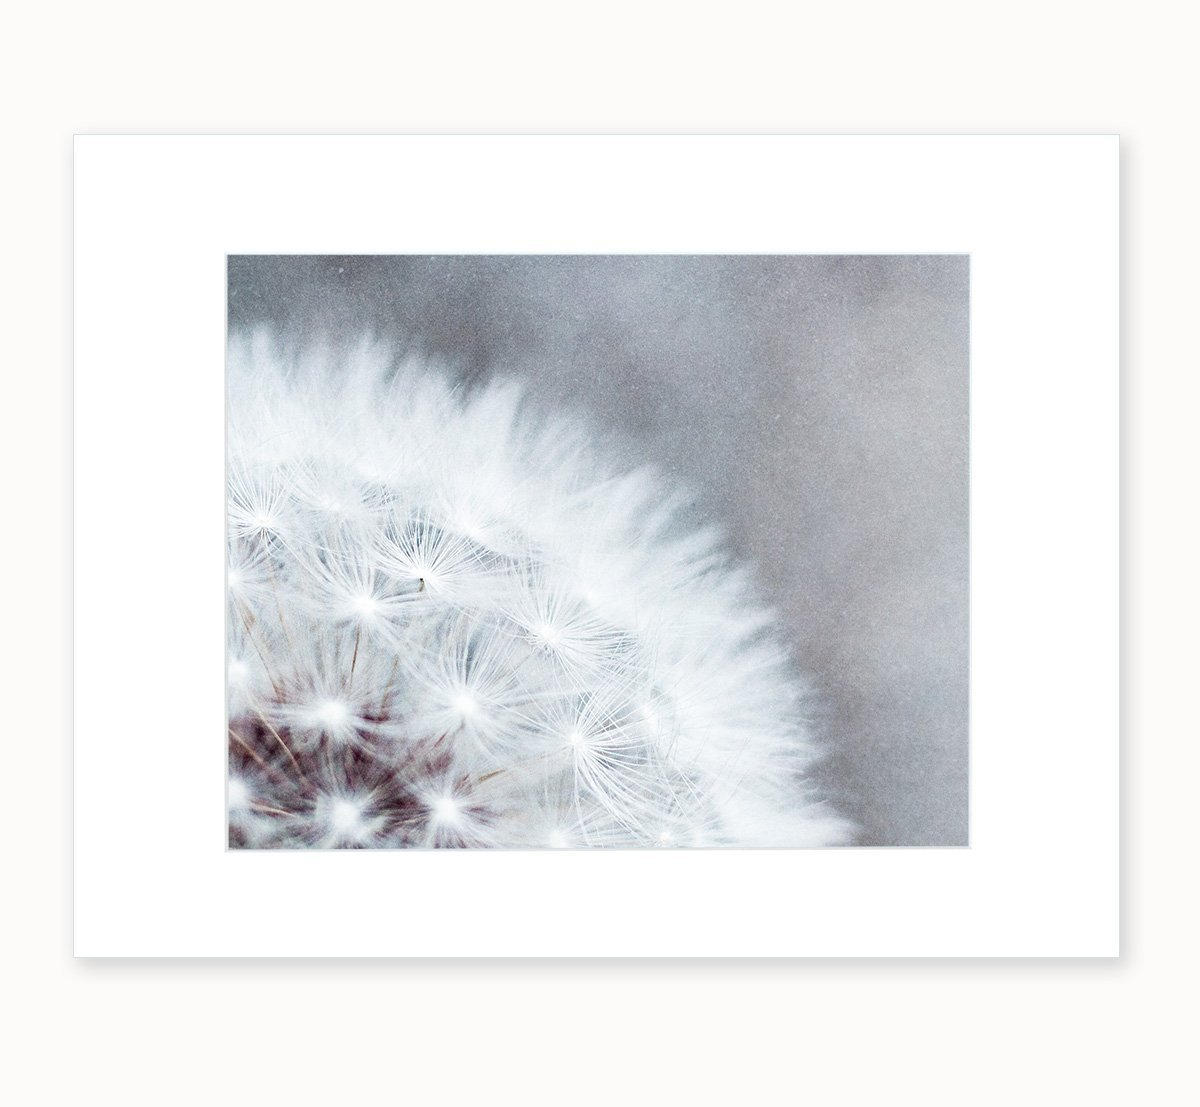 Grey Neutral Colors Botanical Wall Art, Dandelion Floral Photography, Wild Flower Nature Decor, 8x10 Matted Photo Print, (fits 11x14 frame) 'Dandelion Queen'